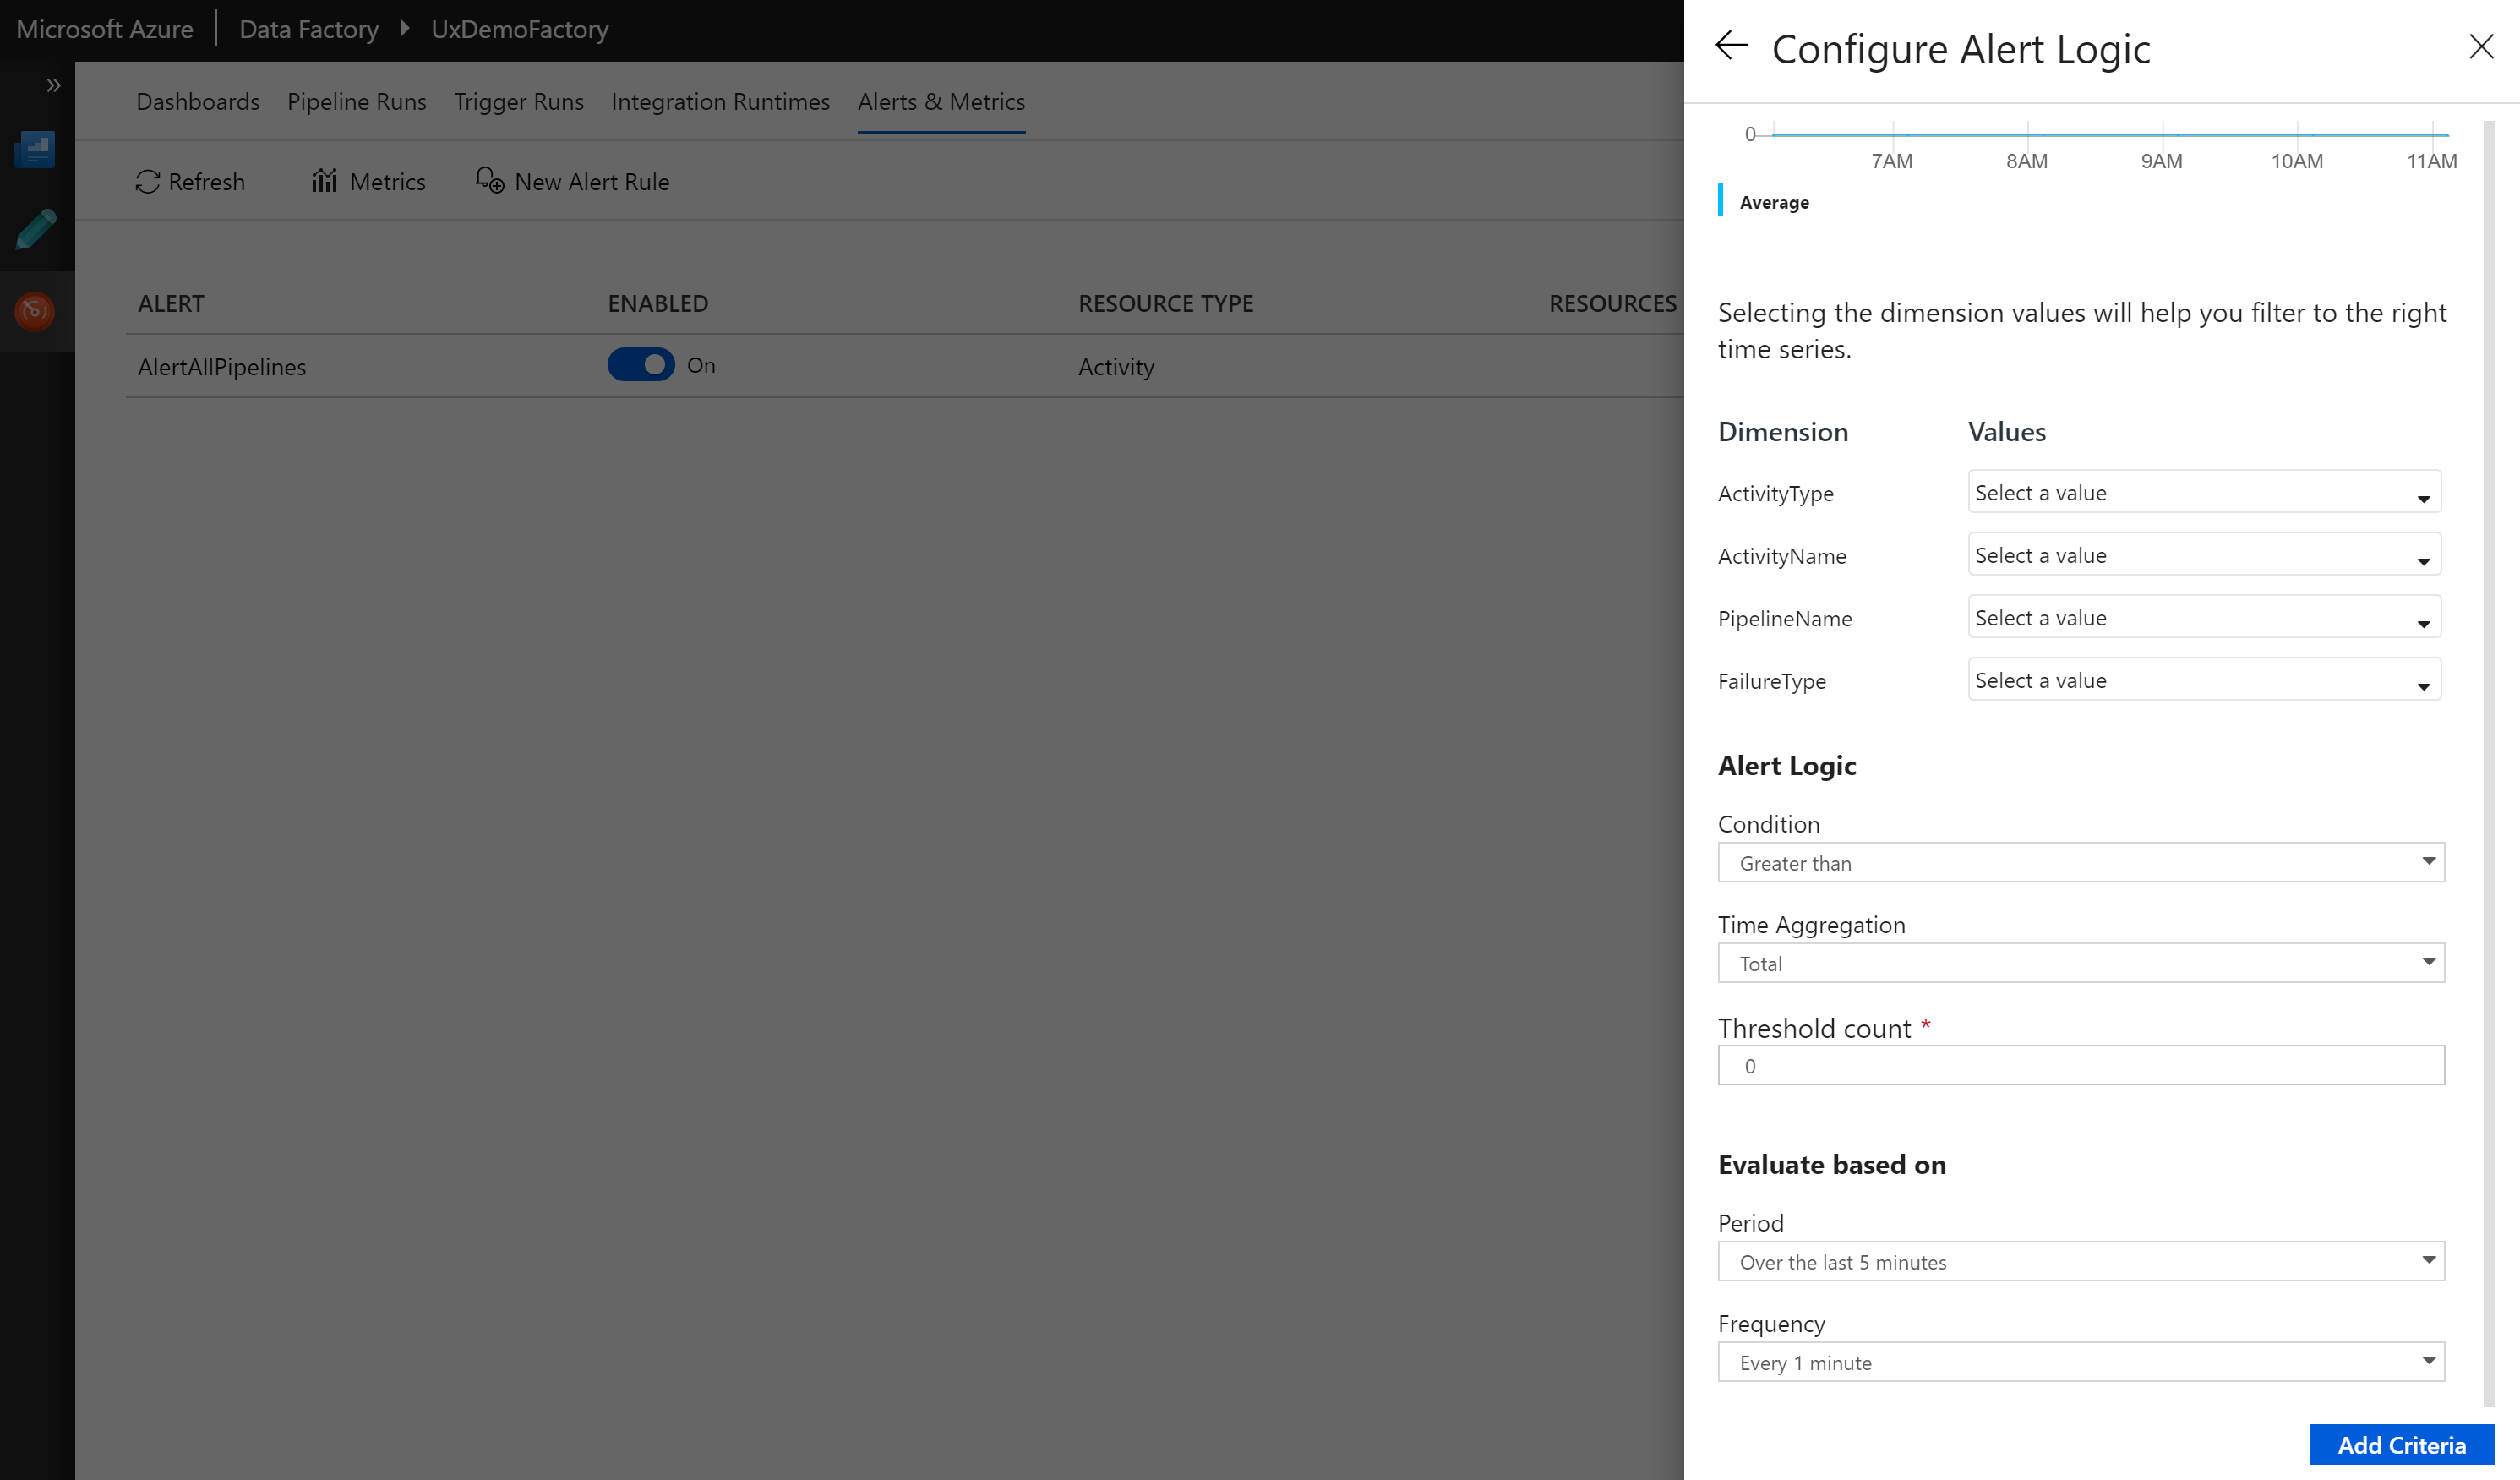 Configure the alert logic in Azure Data Factory